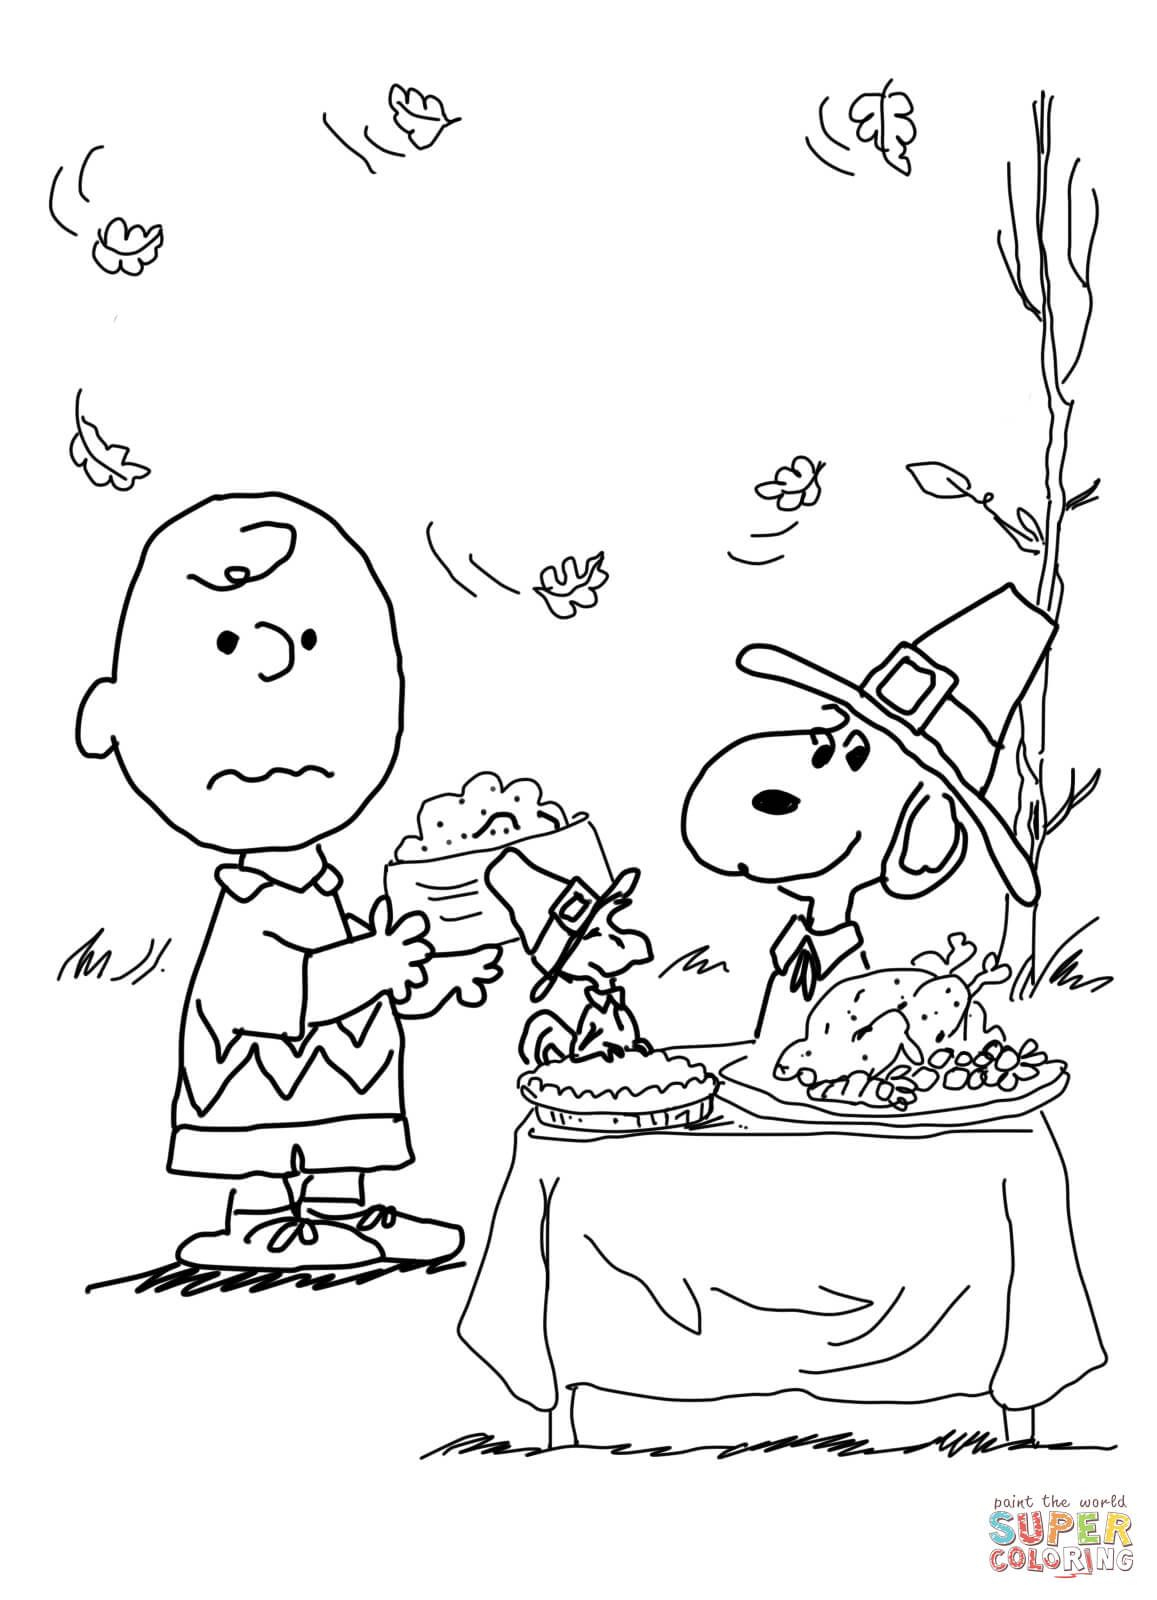 Charlie Brown Thanksgiving Coloring Page From Peanuts Category - Free Printable Charlie Brown Halloween Coloring Pages